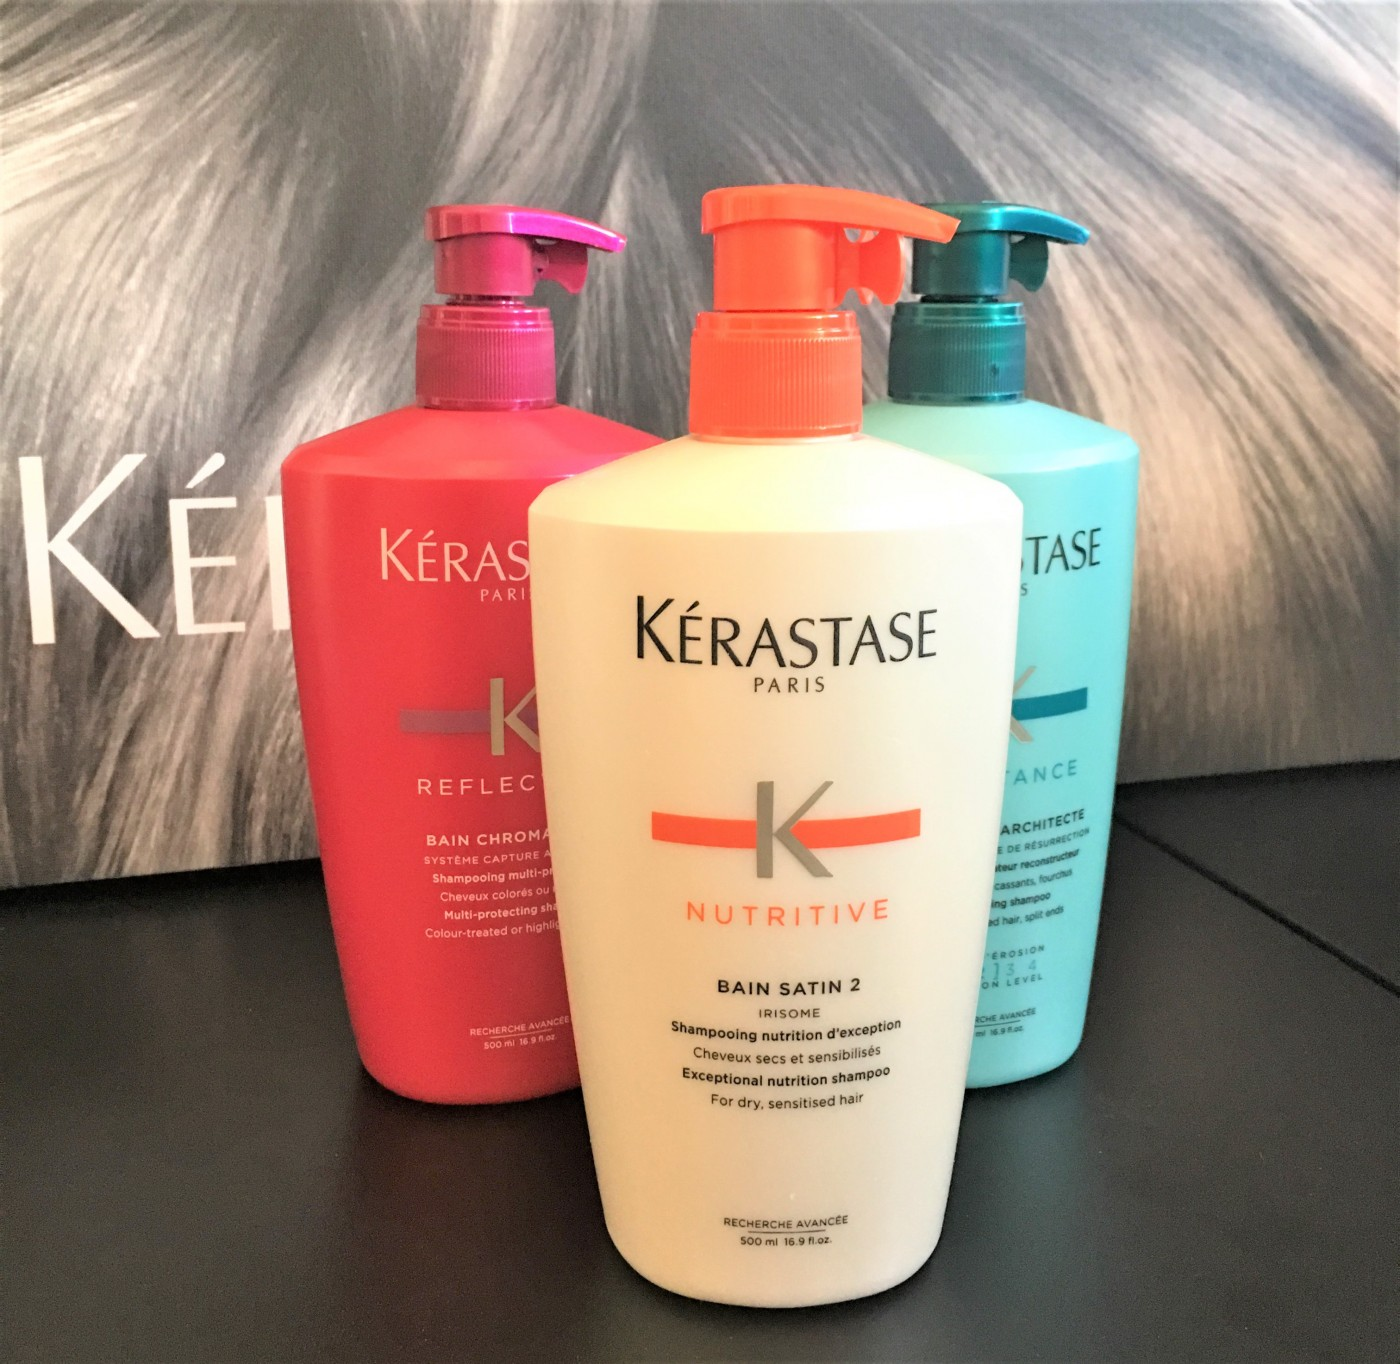 Kerastase 500 Bottle